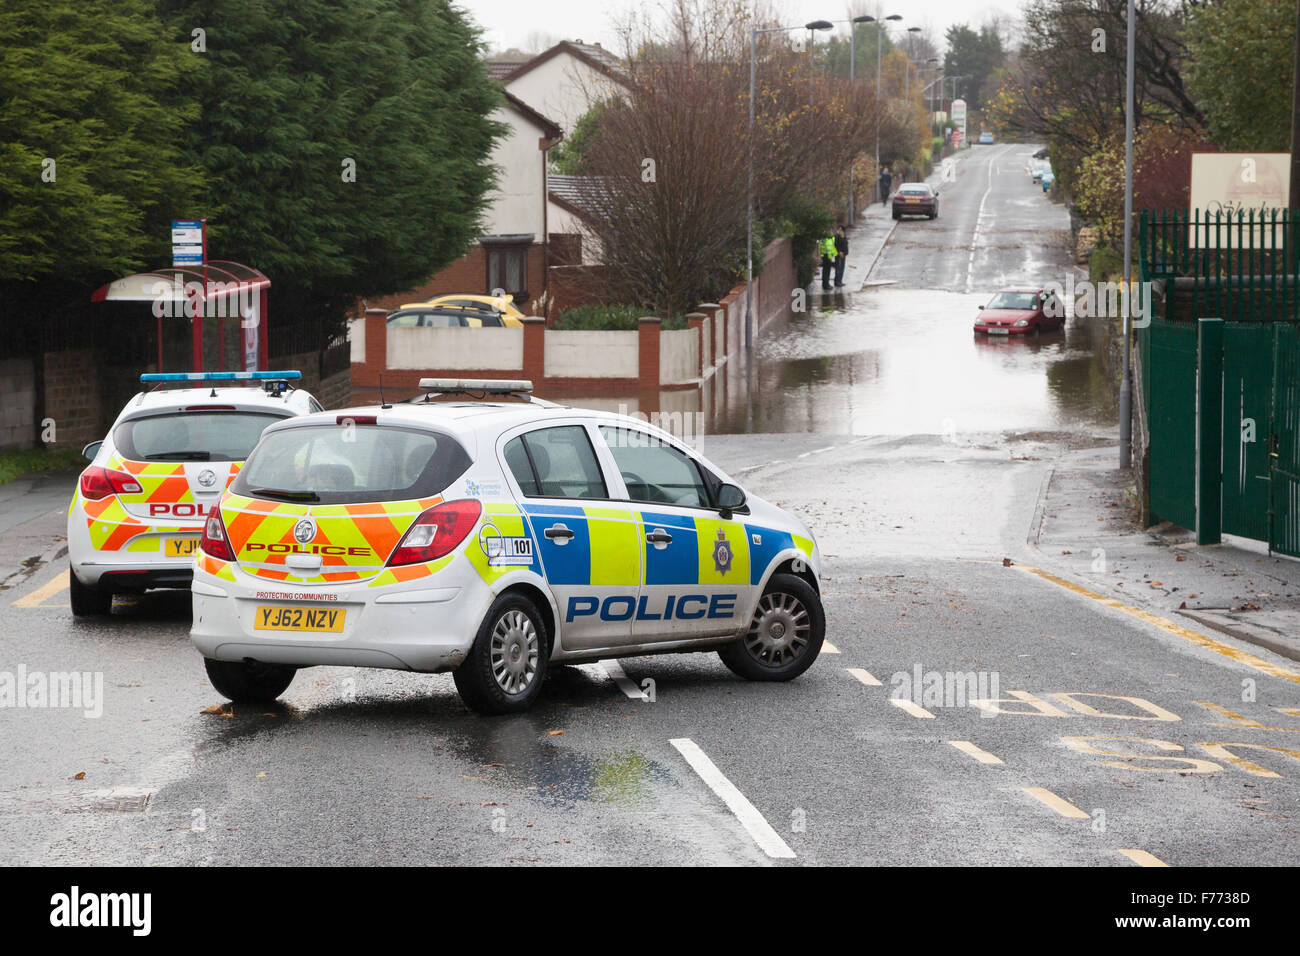 Flooding that occurred on Pasture Lane, Clayton, Bradford, on the 15th November 2015 due to heavy persistent rainfall. - Stock Image